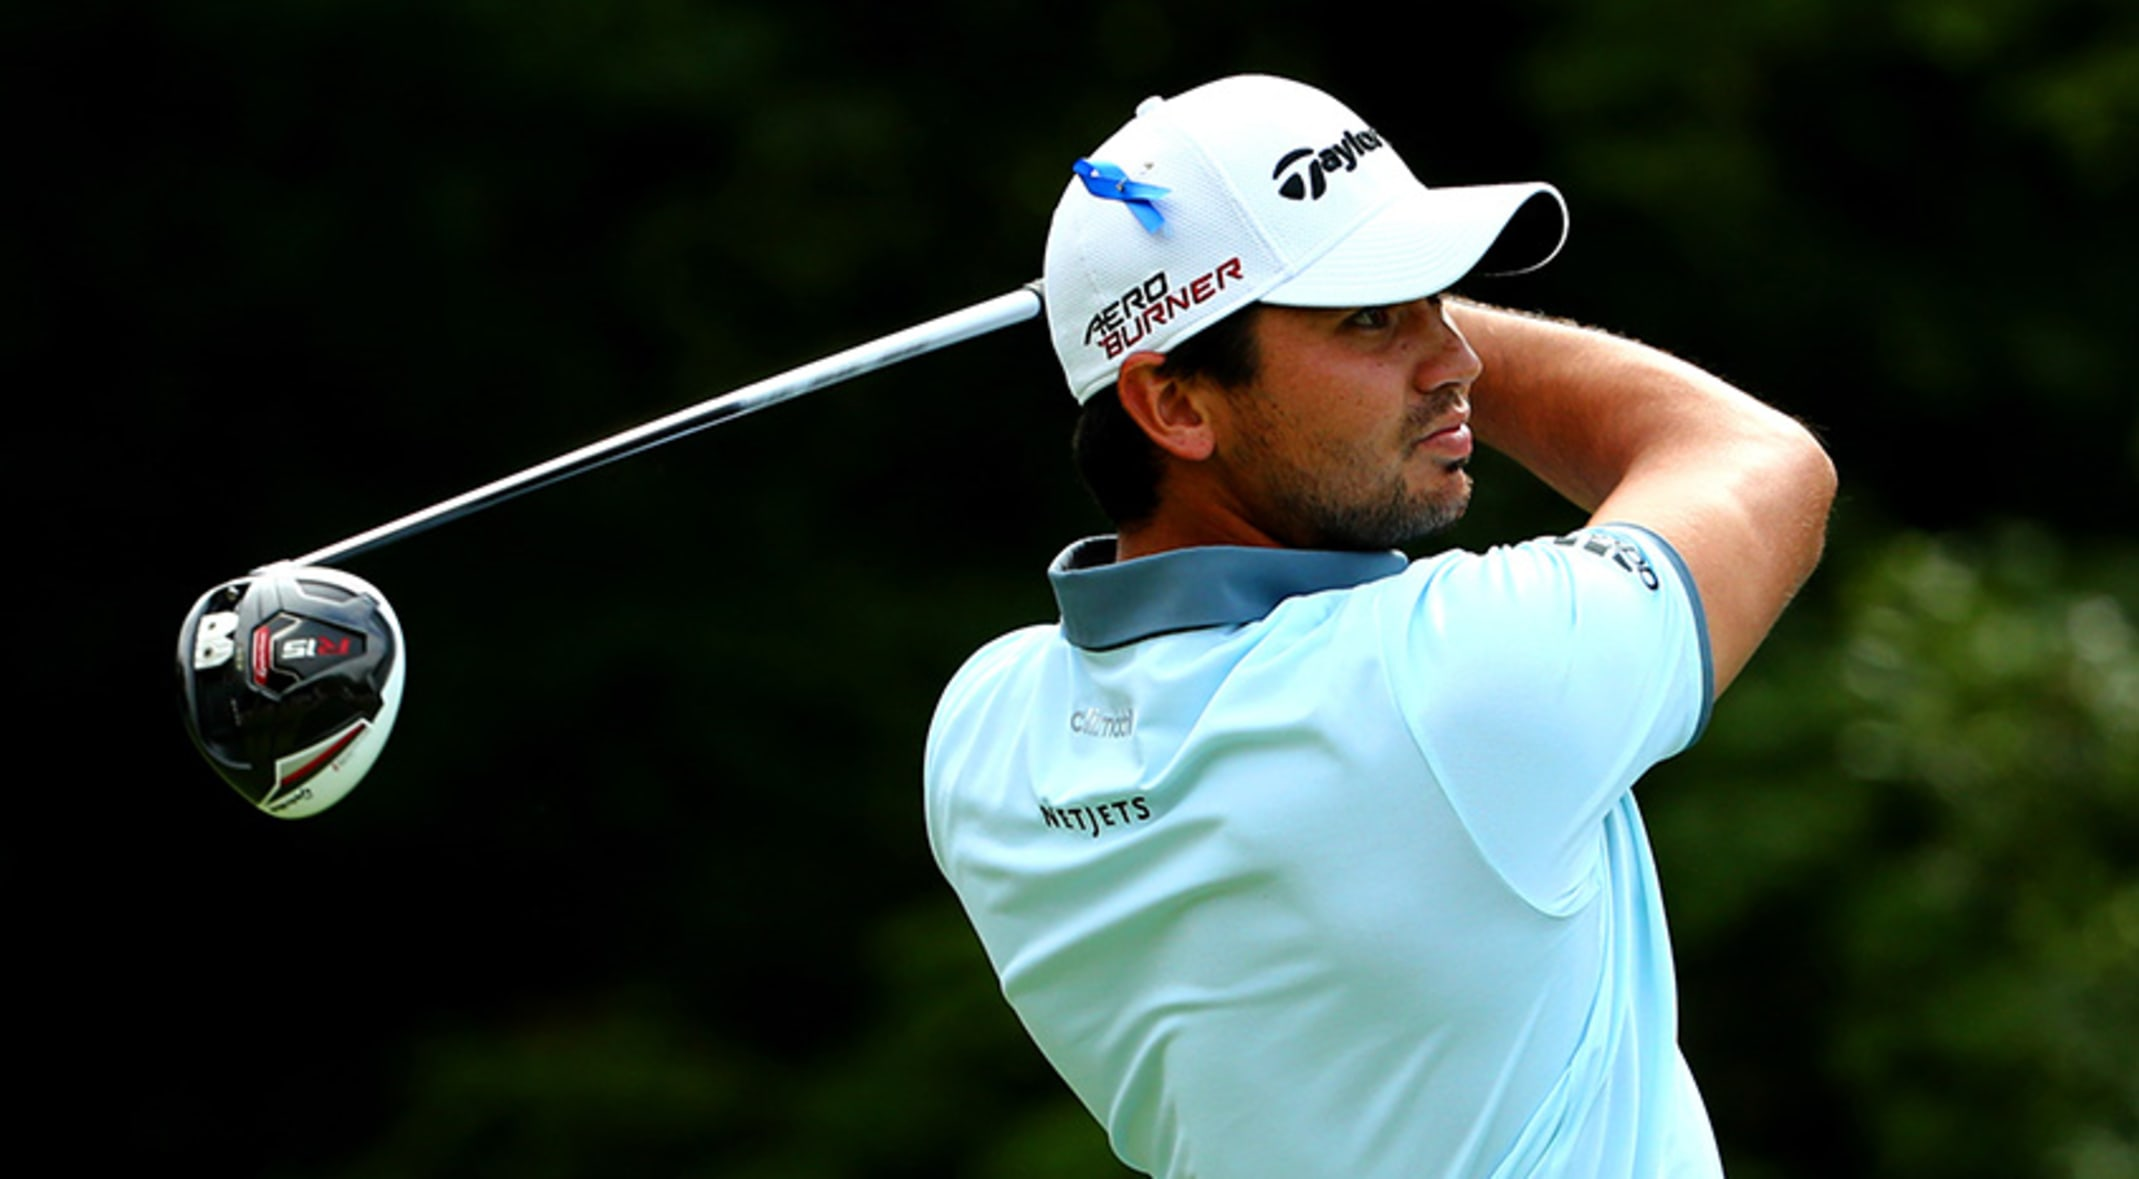 If Jason Day wins this week then there apos s a good chance he becomes No. bbe4b7376ba6